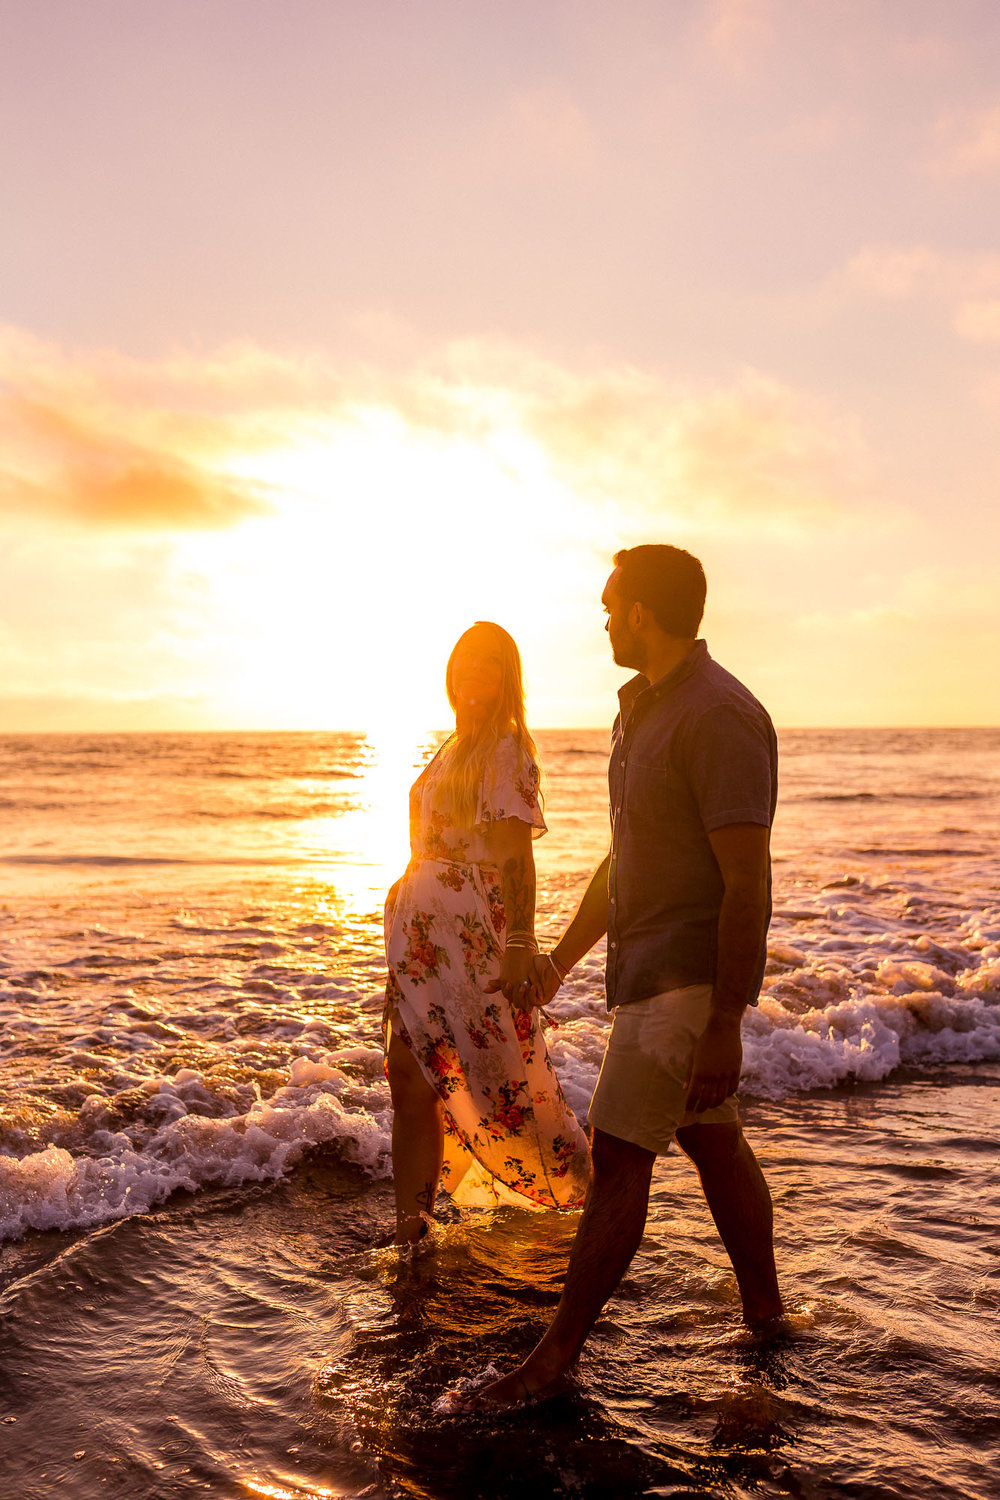 Justine_Puneet_Cardiff_Engagement_Session_257.jpg